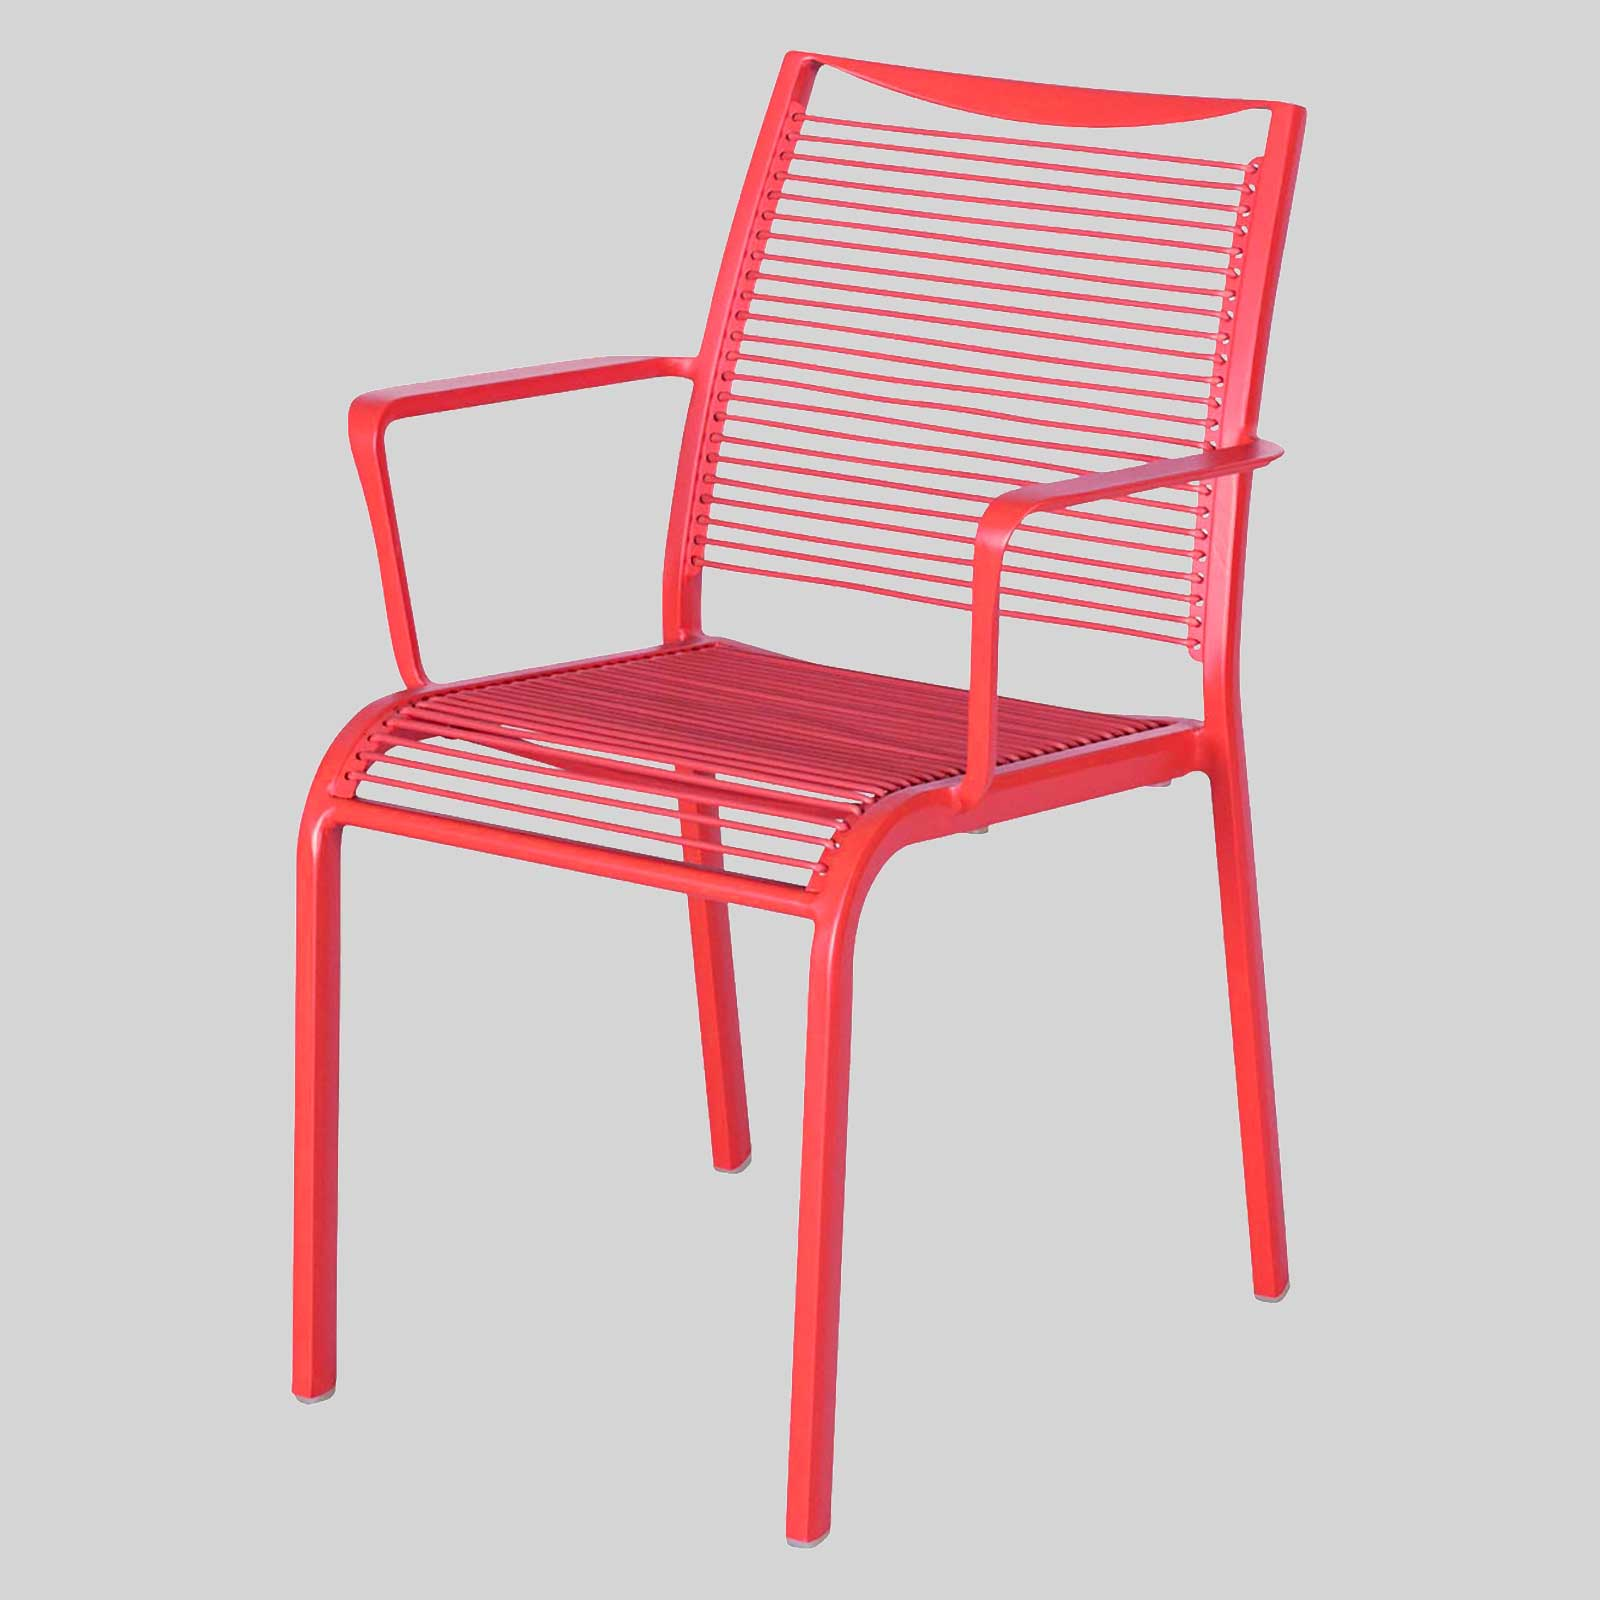 Outdoor cafe chairs - Waverly Outdoor Cafe Chairs With Arms Red